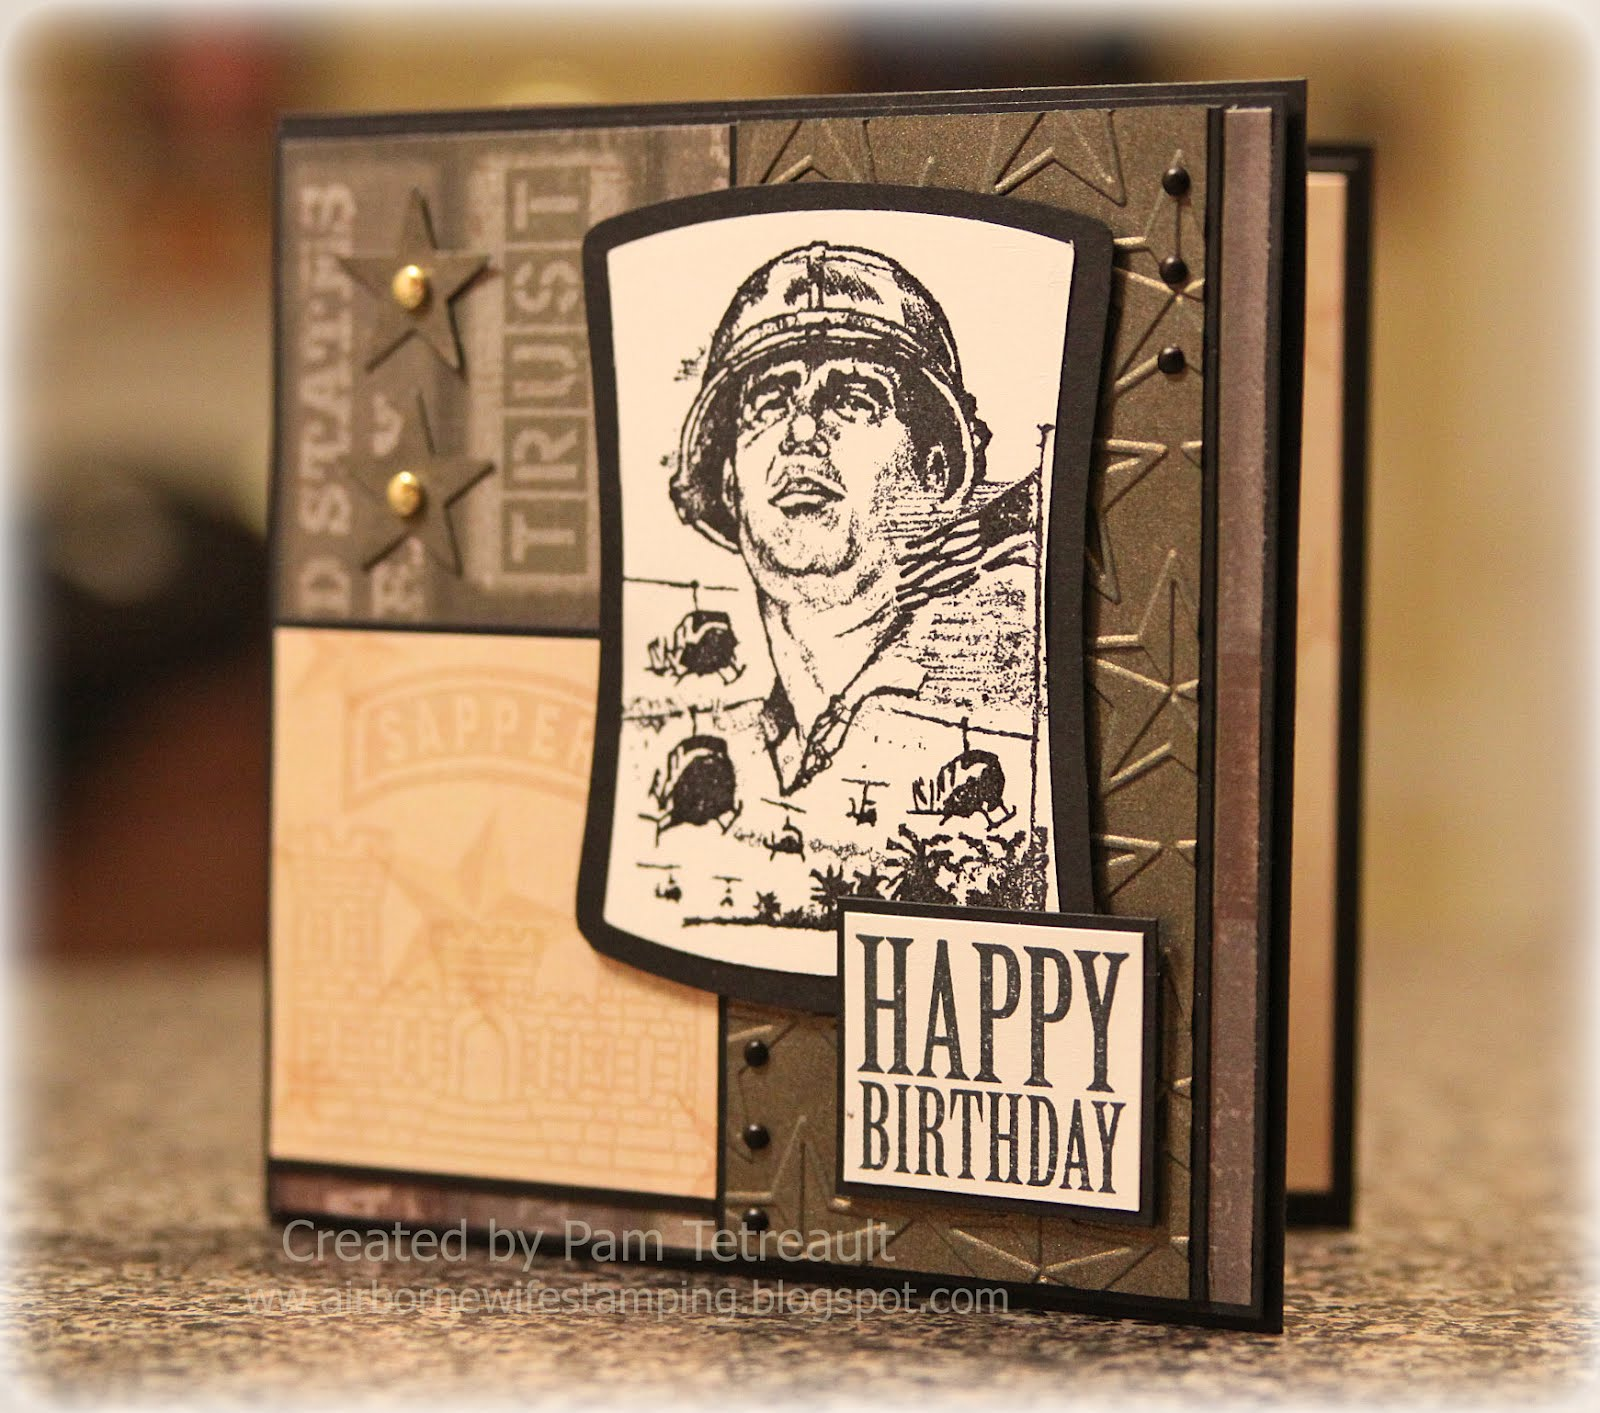 Airbornewife's Stamping Spot: Happy Birthday........ Army